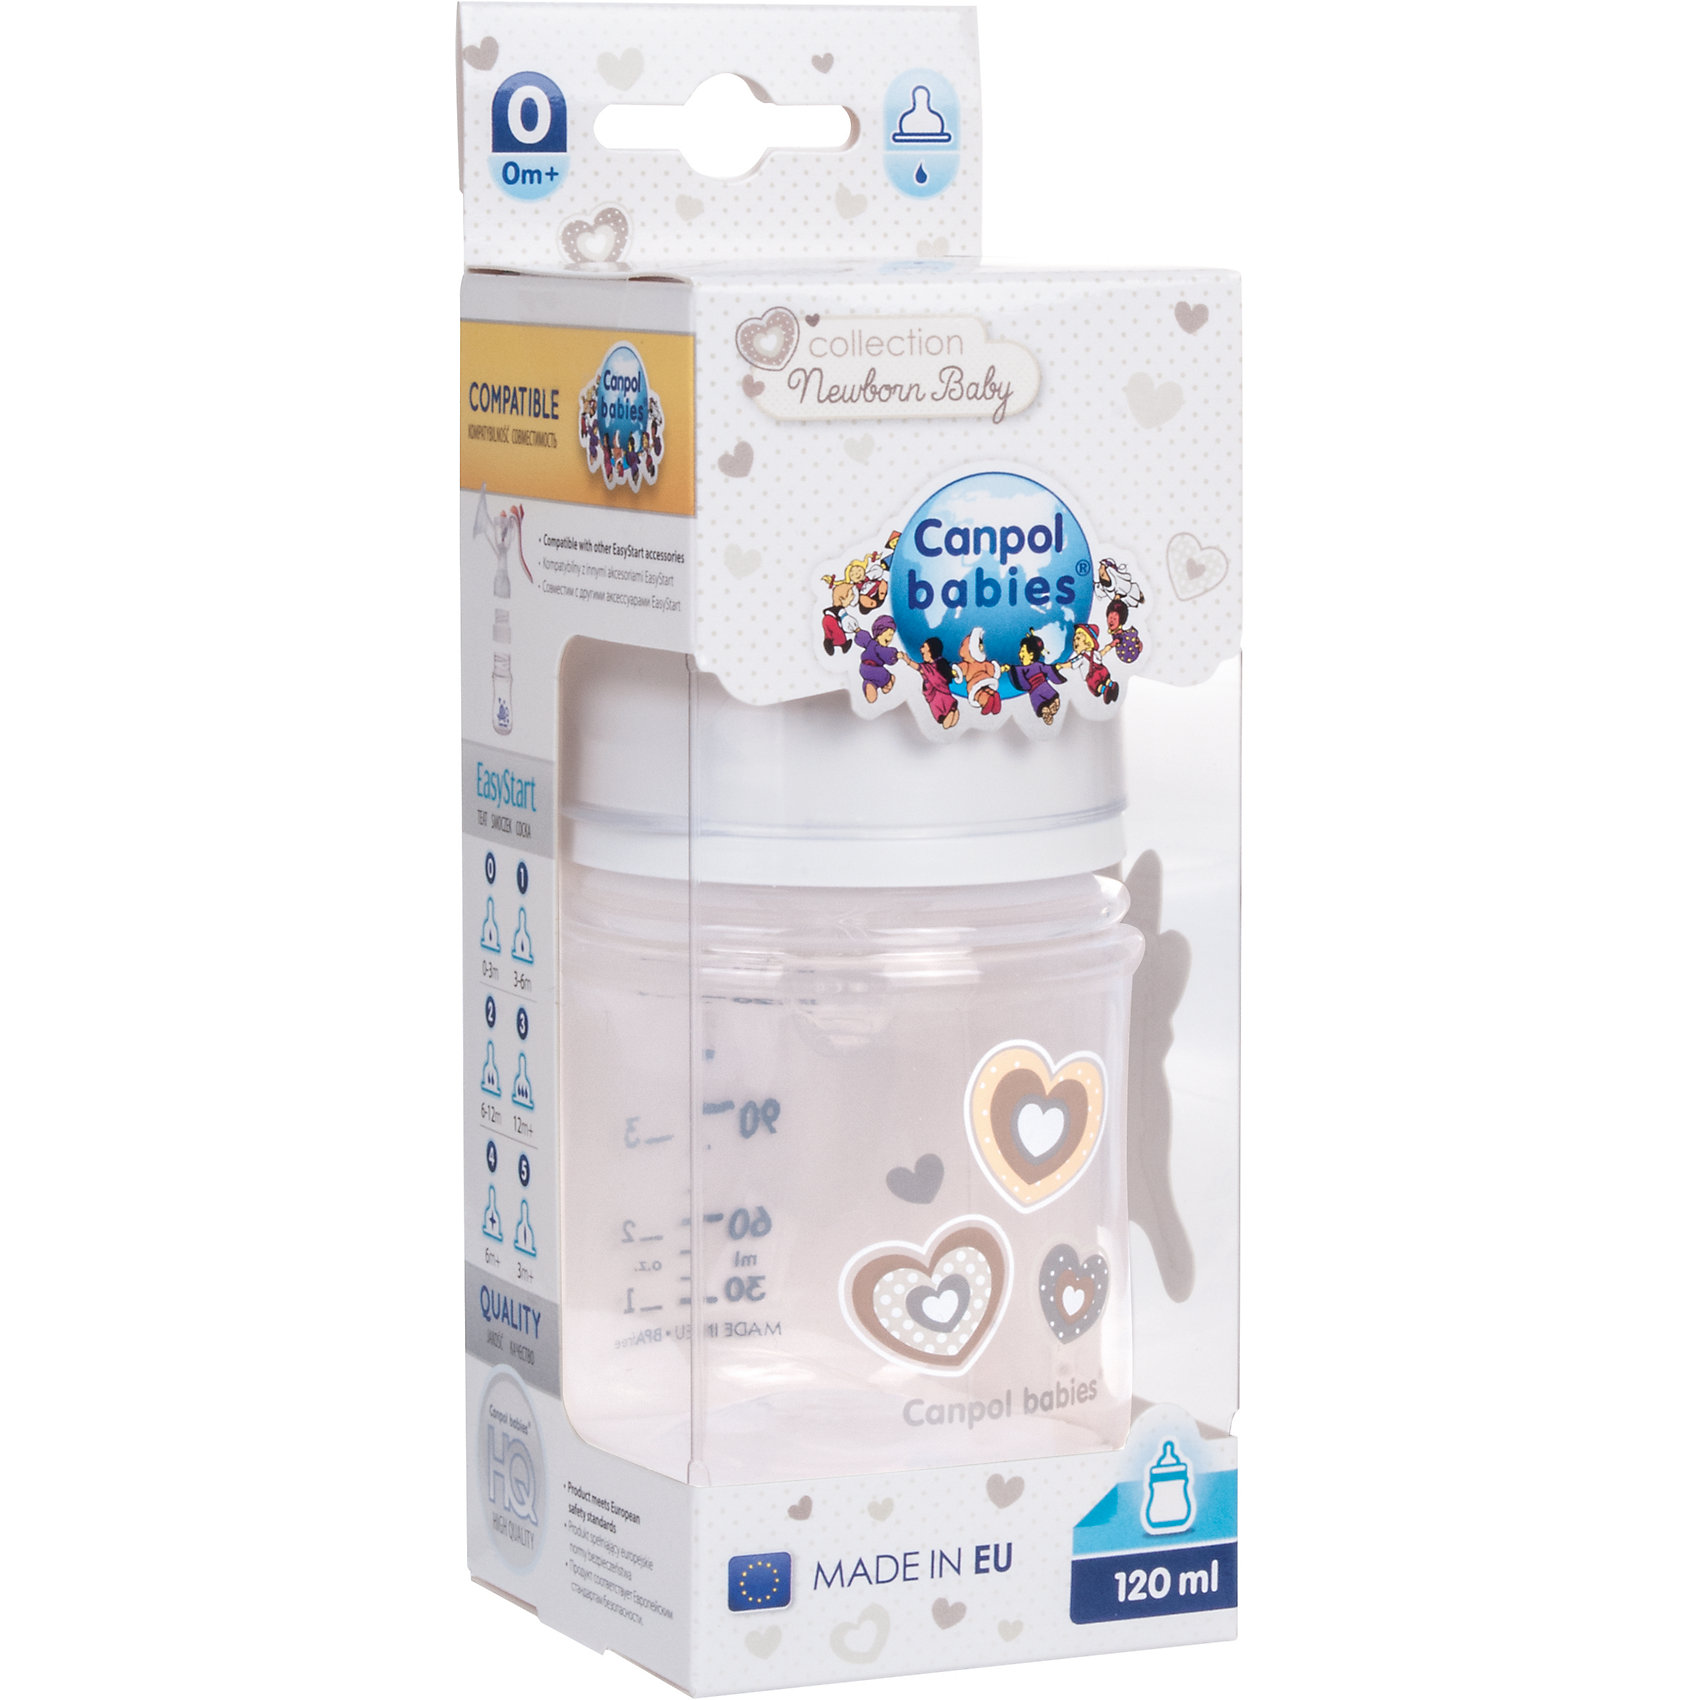 Canpol Babies Бутылочка PP EasyStart с широким горлышком антиколиковая, 120 мл, 0+ Newborn baby, Canpol Babies, белый electrical breast pump enlargement massager enhancer electric manual former cup vacuum suction body exerciser sex toys for women